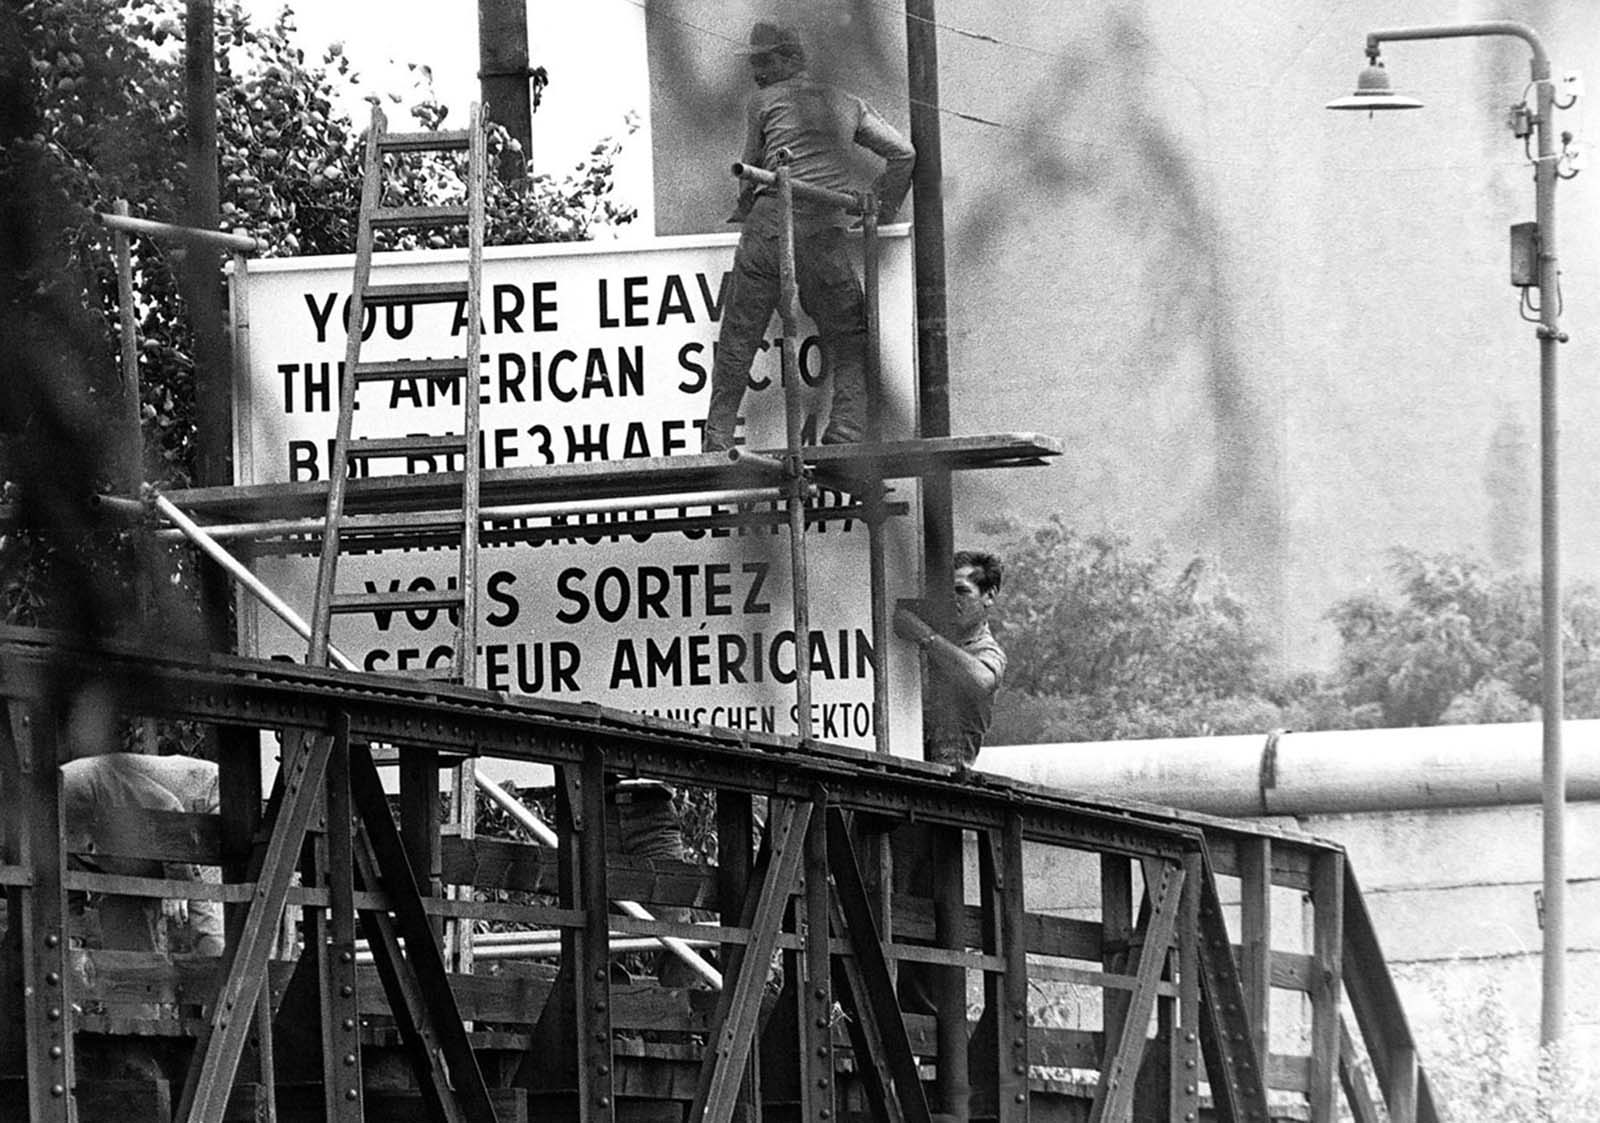 Workers set up a sign warning pedestrians they are leaving the American sector of Berlin, Germany, on Wiener Strasse (Vienna Street) in the district of Kreuzberg in West Berlin, on August 13, 1961. In the background is the Berlin Wall that divides East and West Berlin.